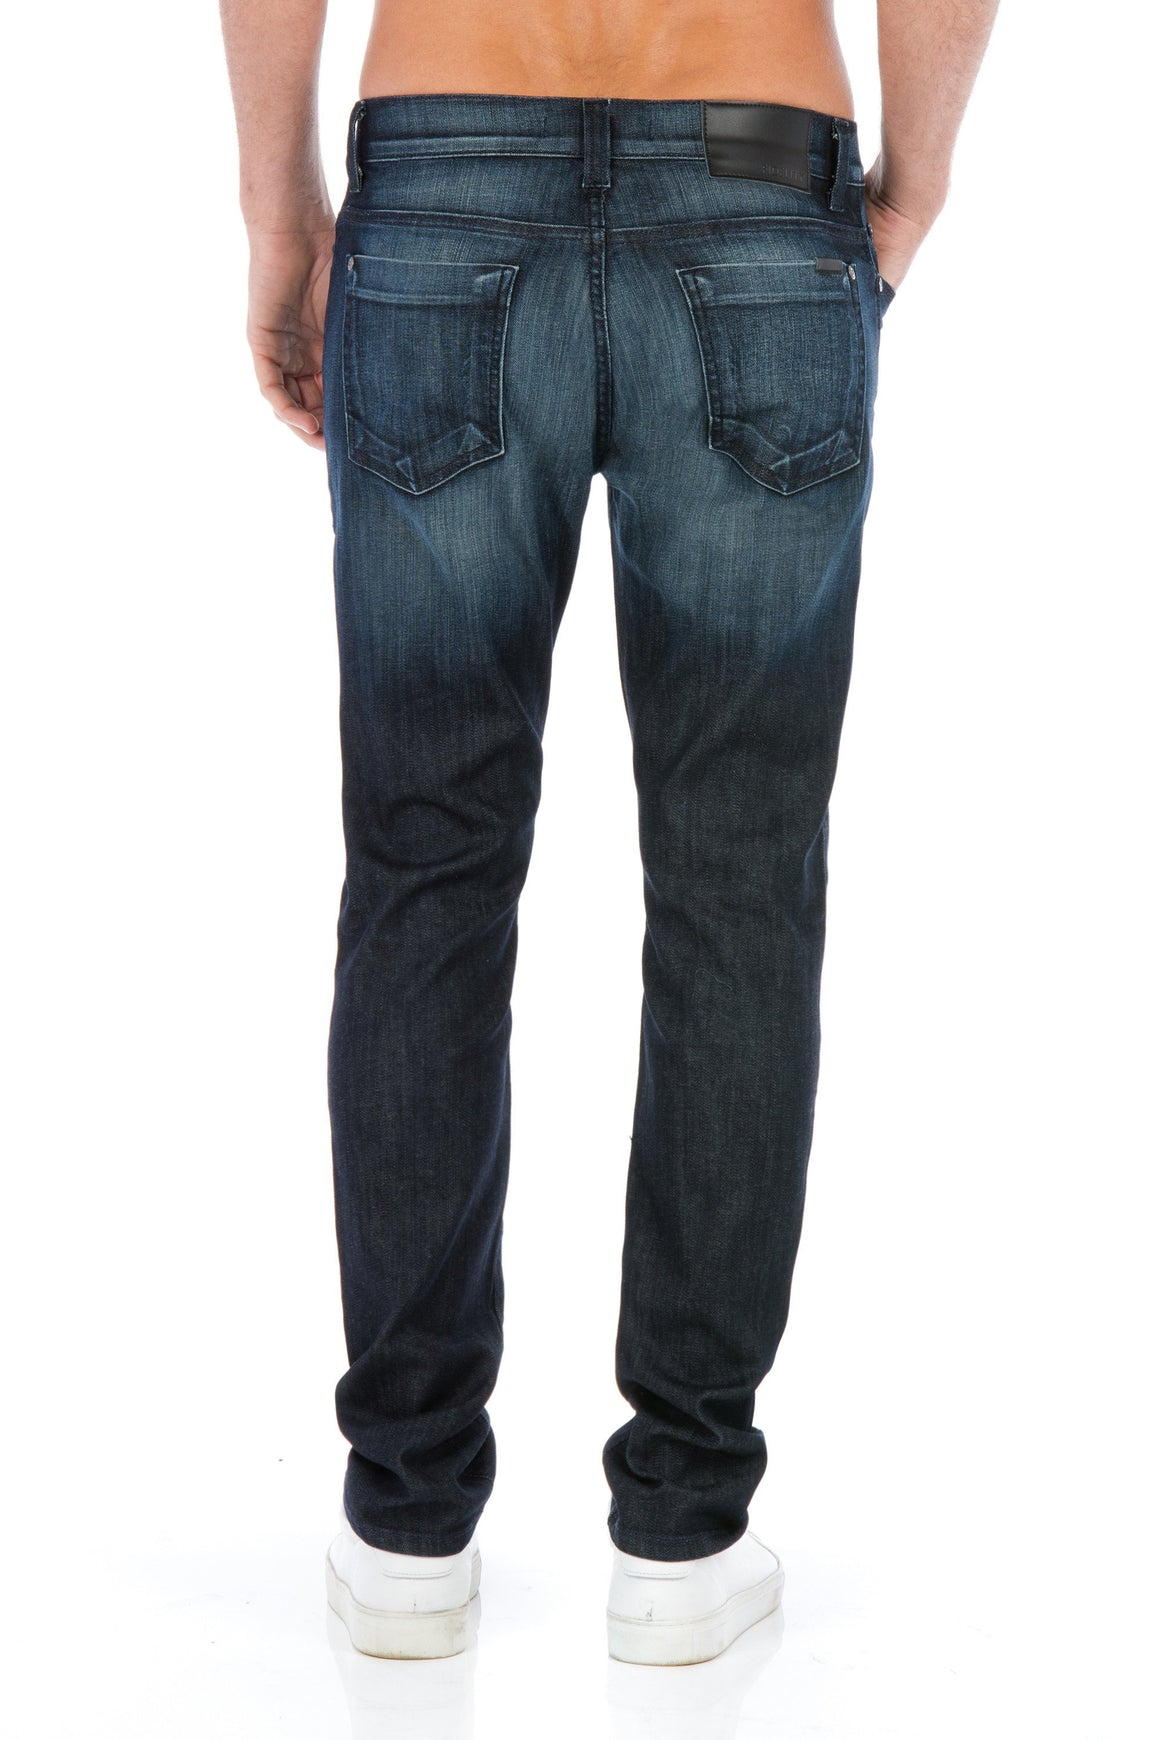 Fidelity Denim 50-11